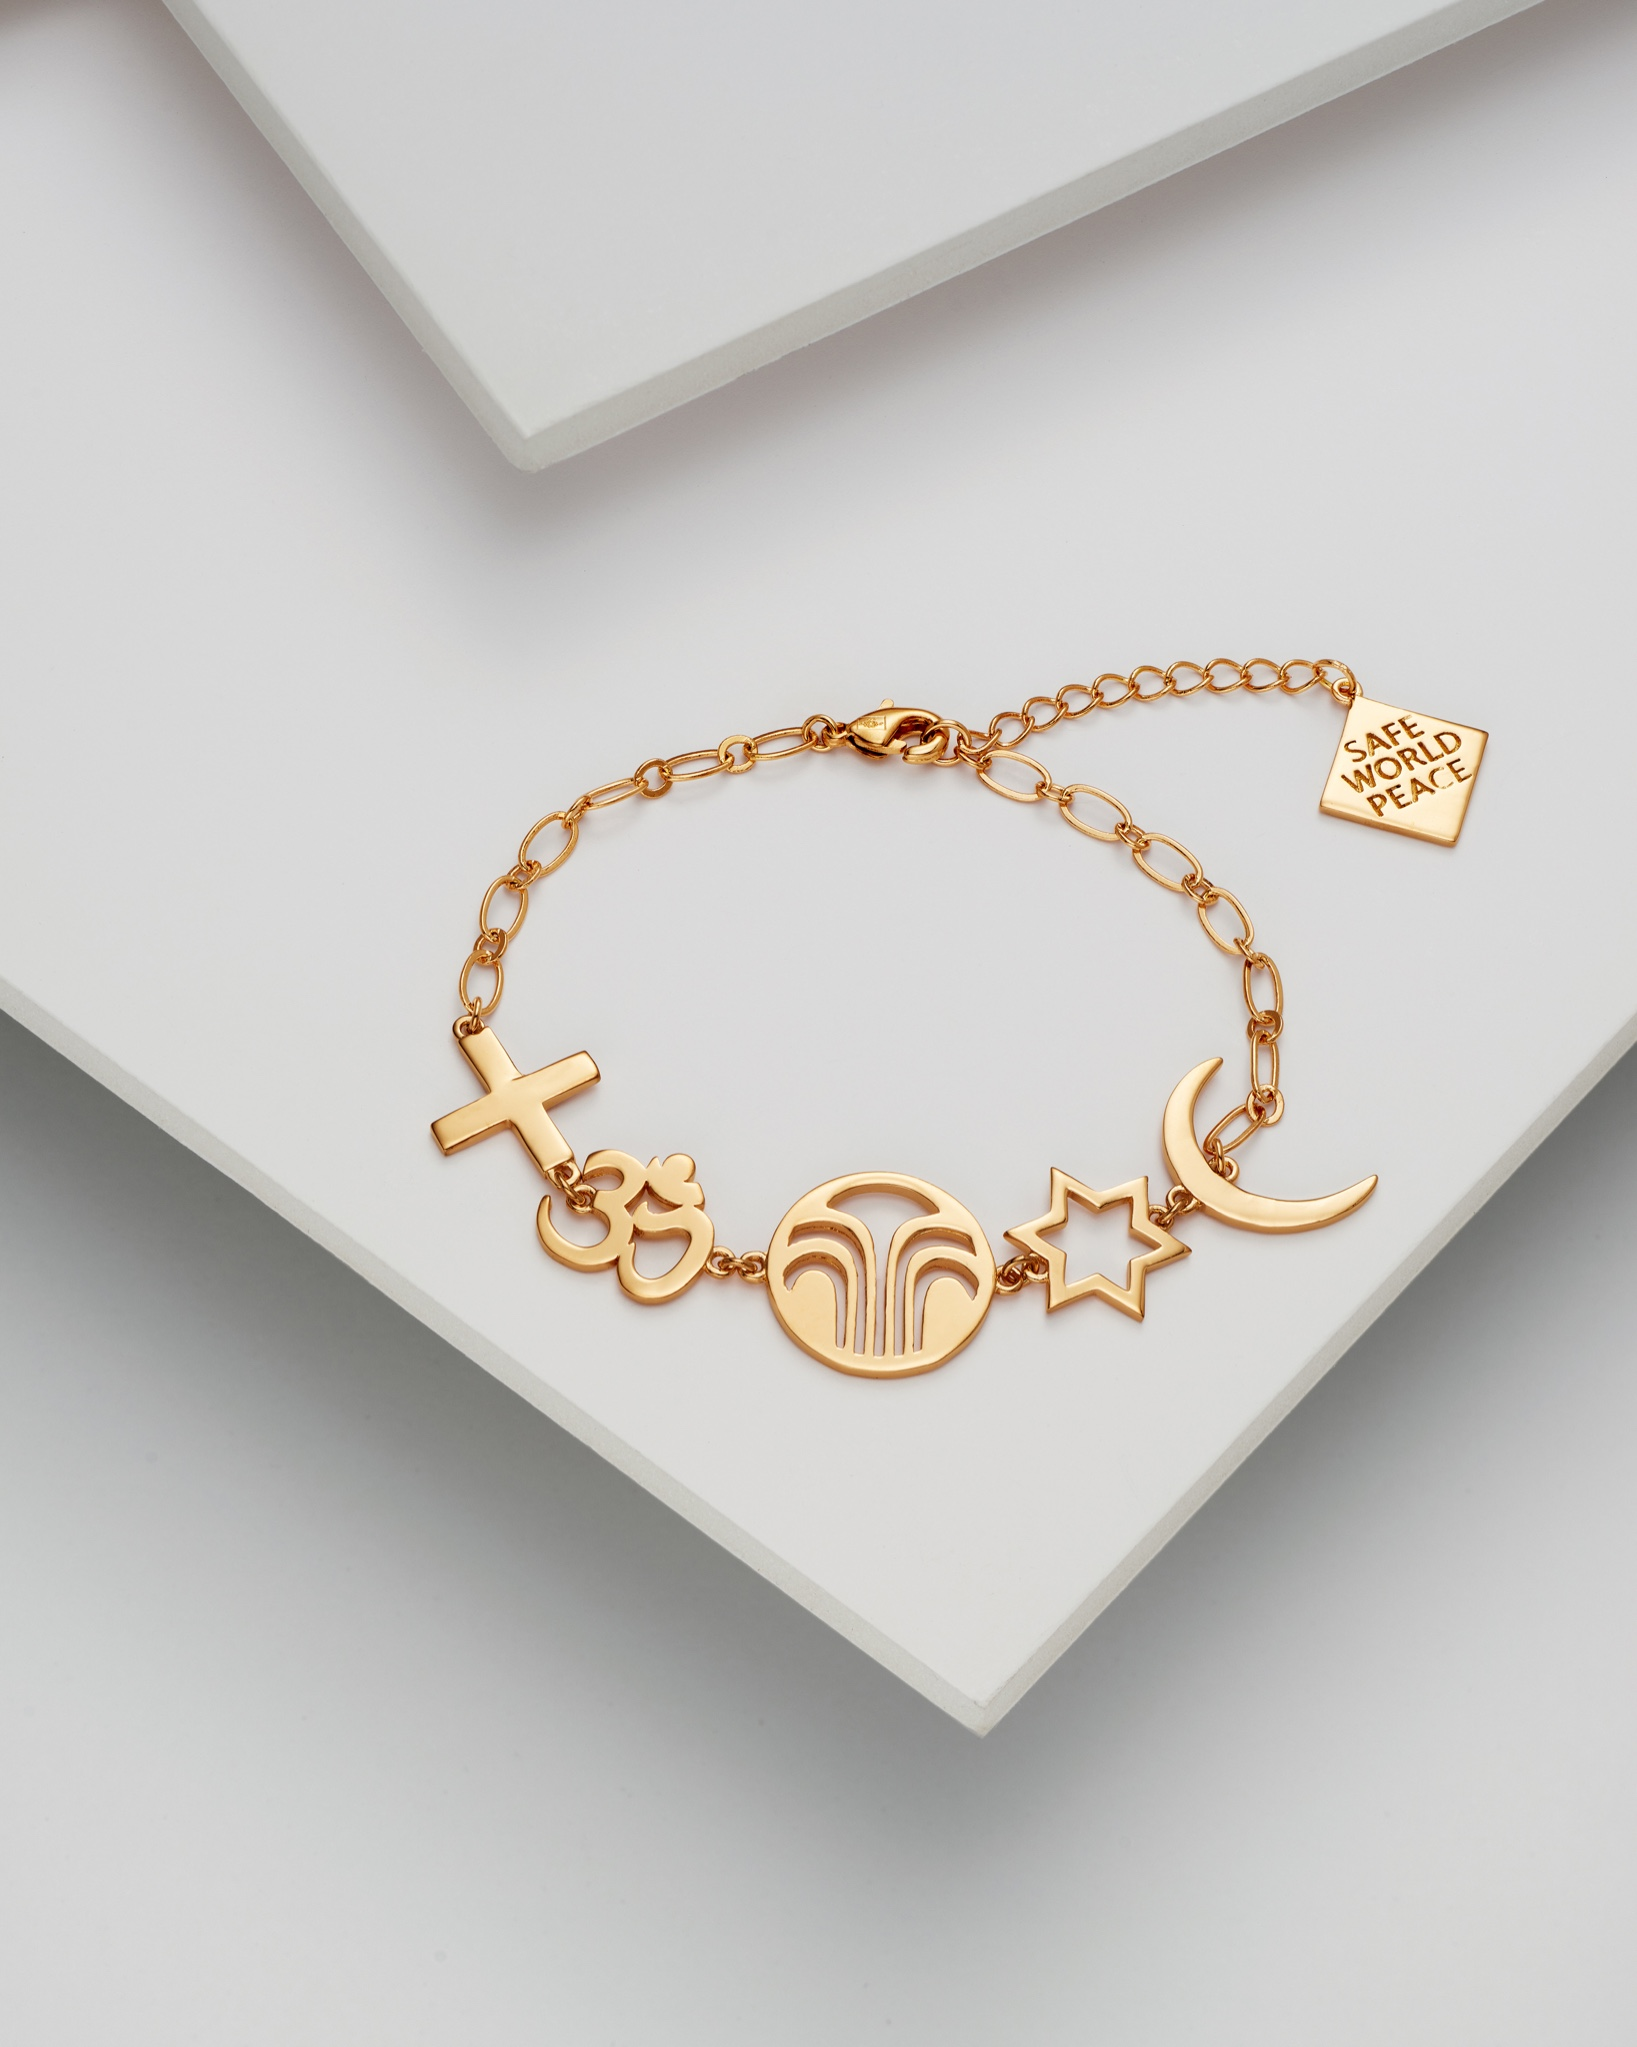 Safe World Peace, Force for Good collection - Gold Plated Brass